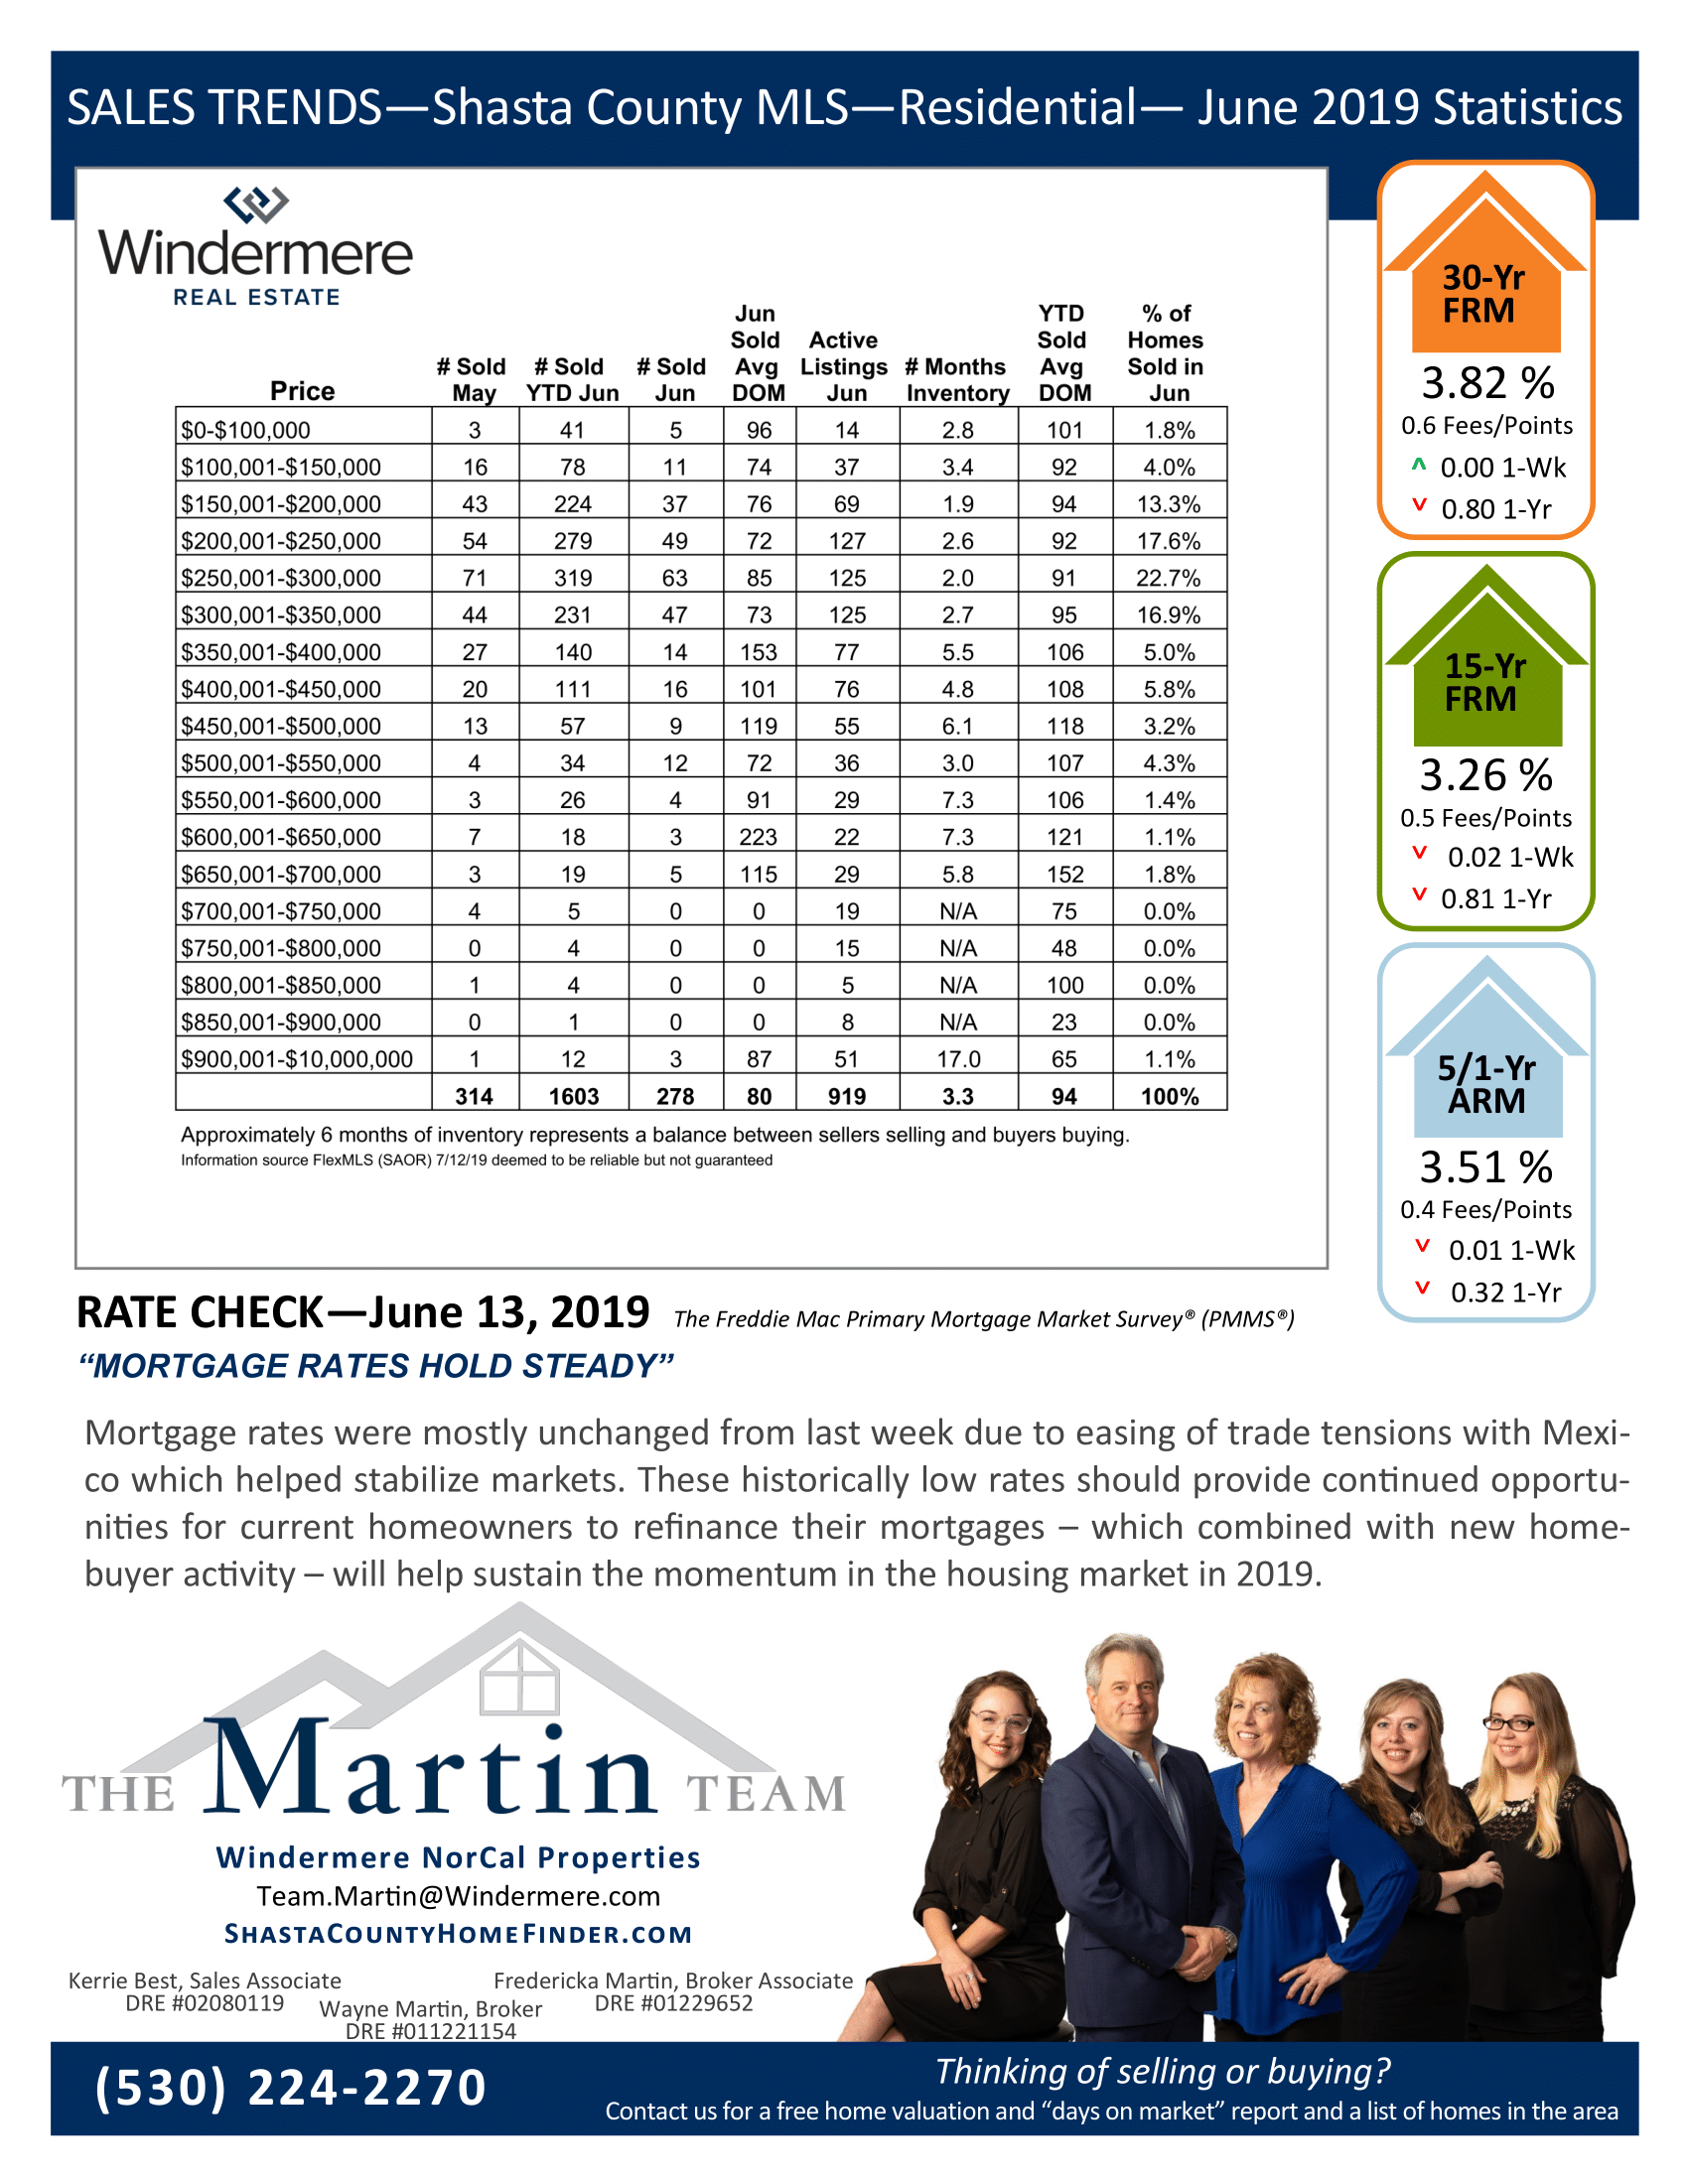 Sales Trends Reports June 2019. Mortgage rates and statistics on residential sales for June 2019.